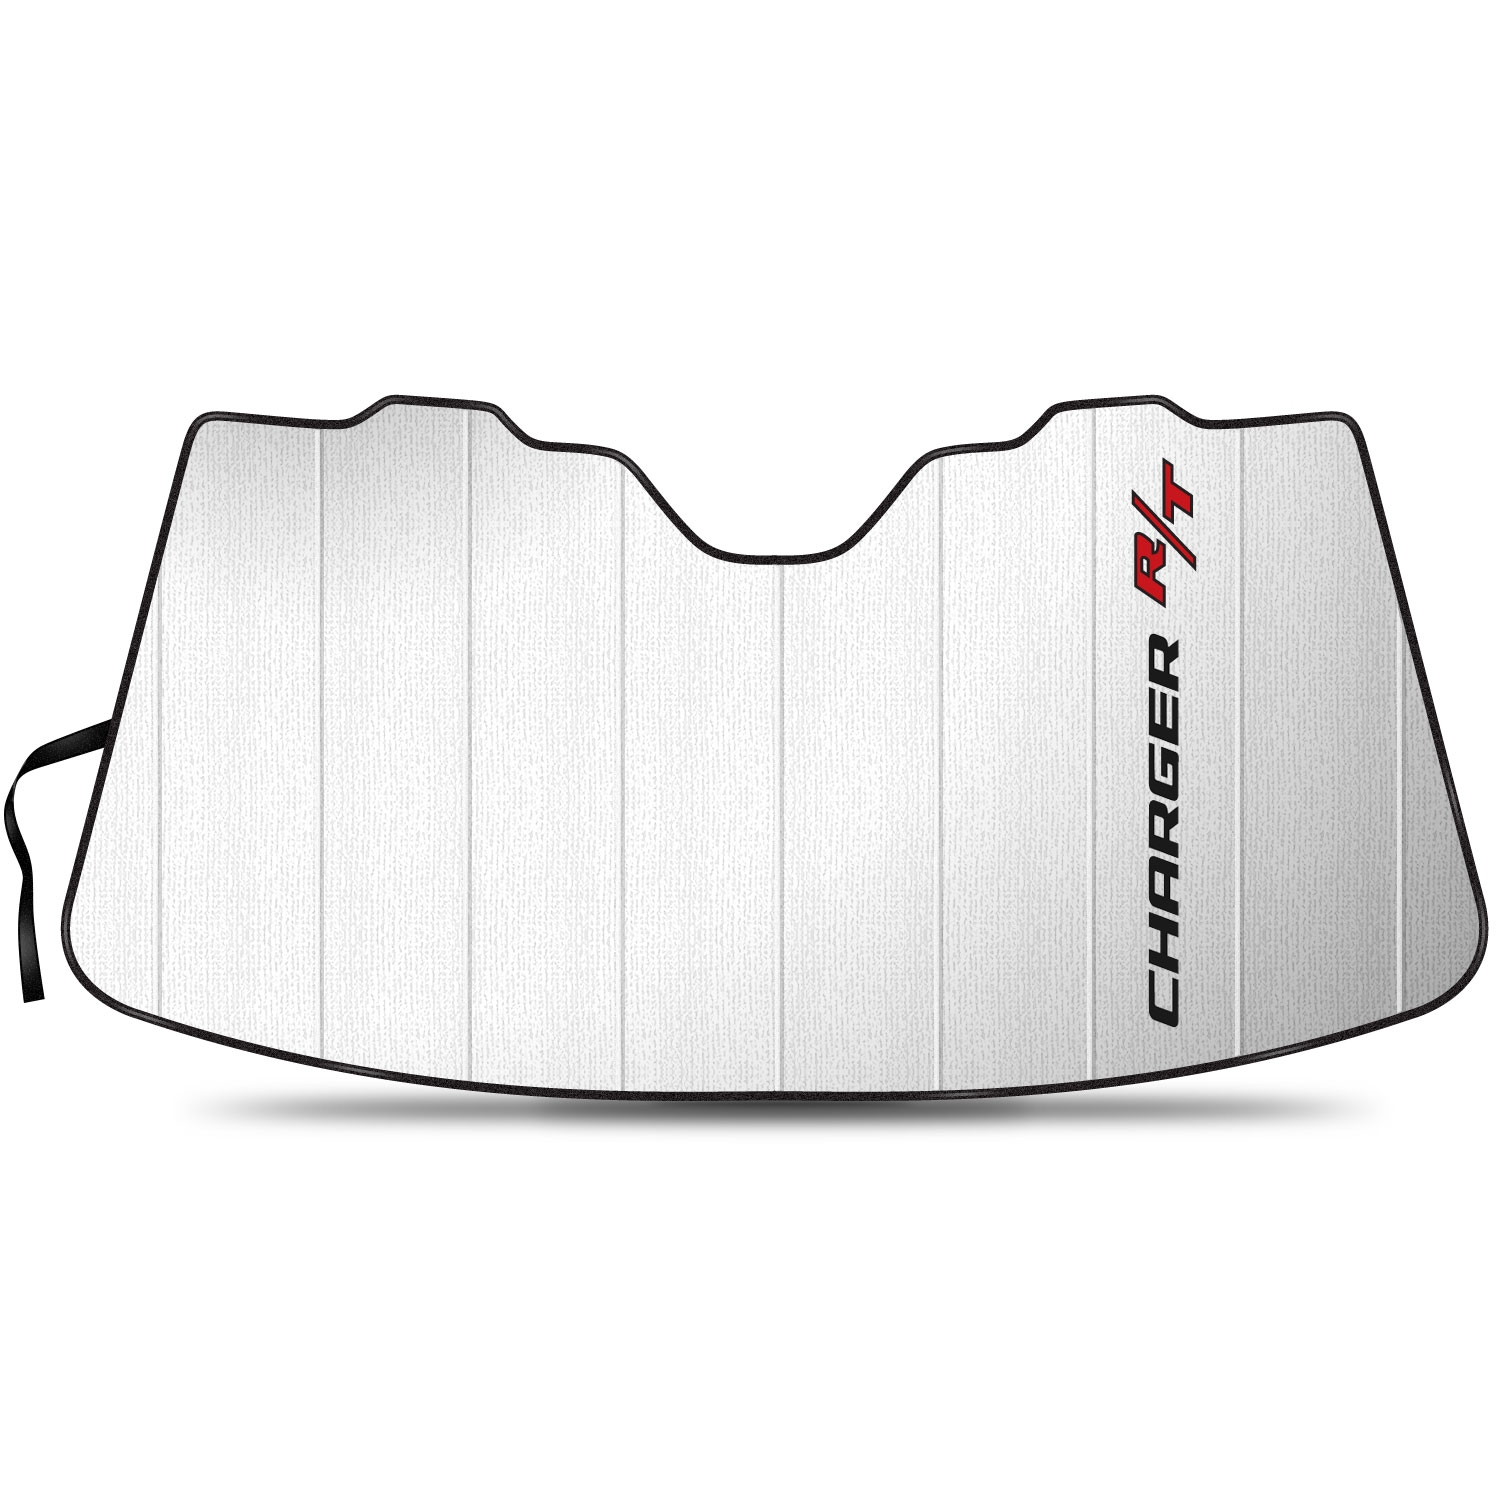 """Dodge Charger R/T Logo 55-1/2""""x 27"""" Stand Up Universal Fit Auto Windshield Sun Shade"""